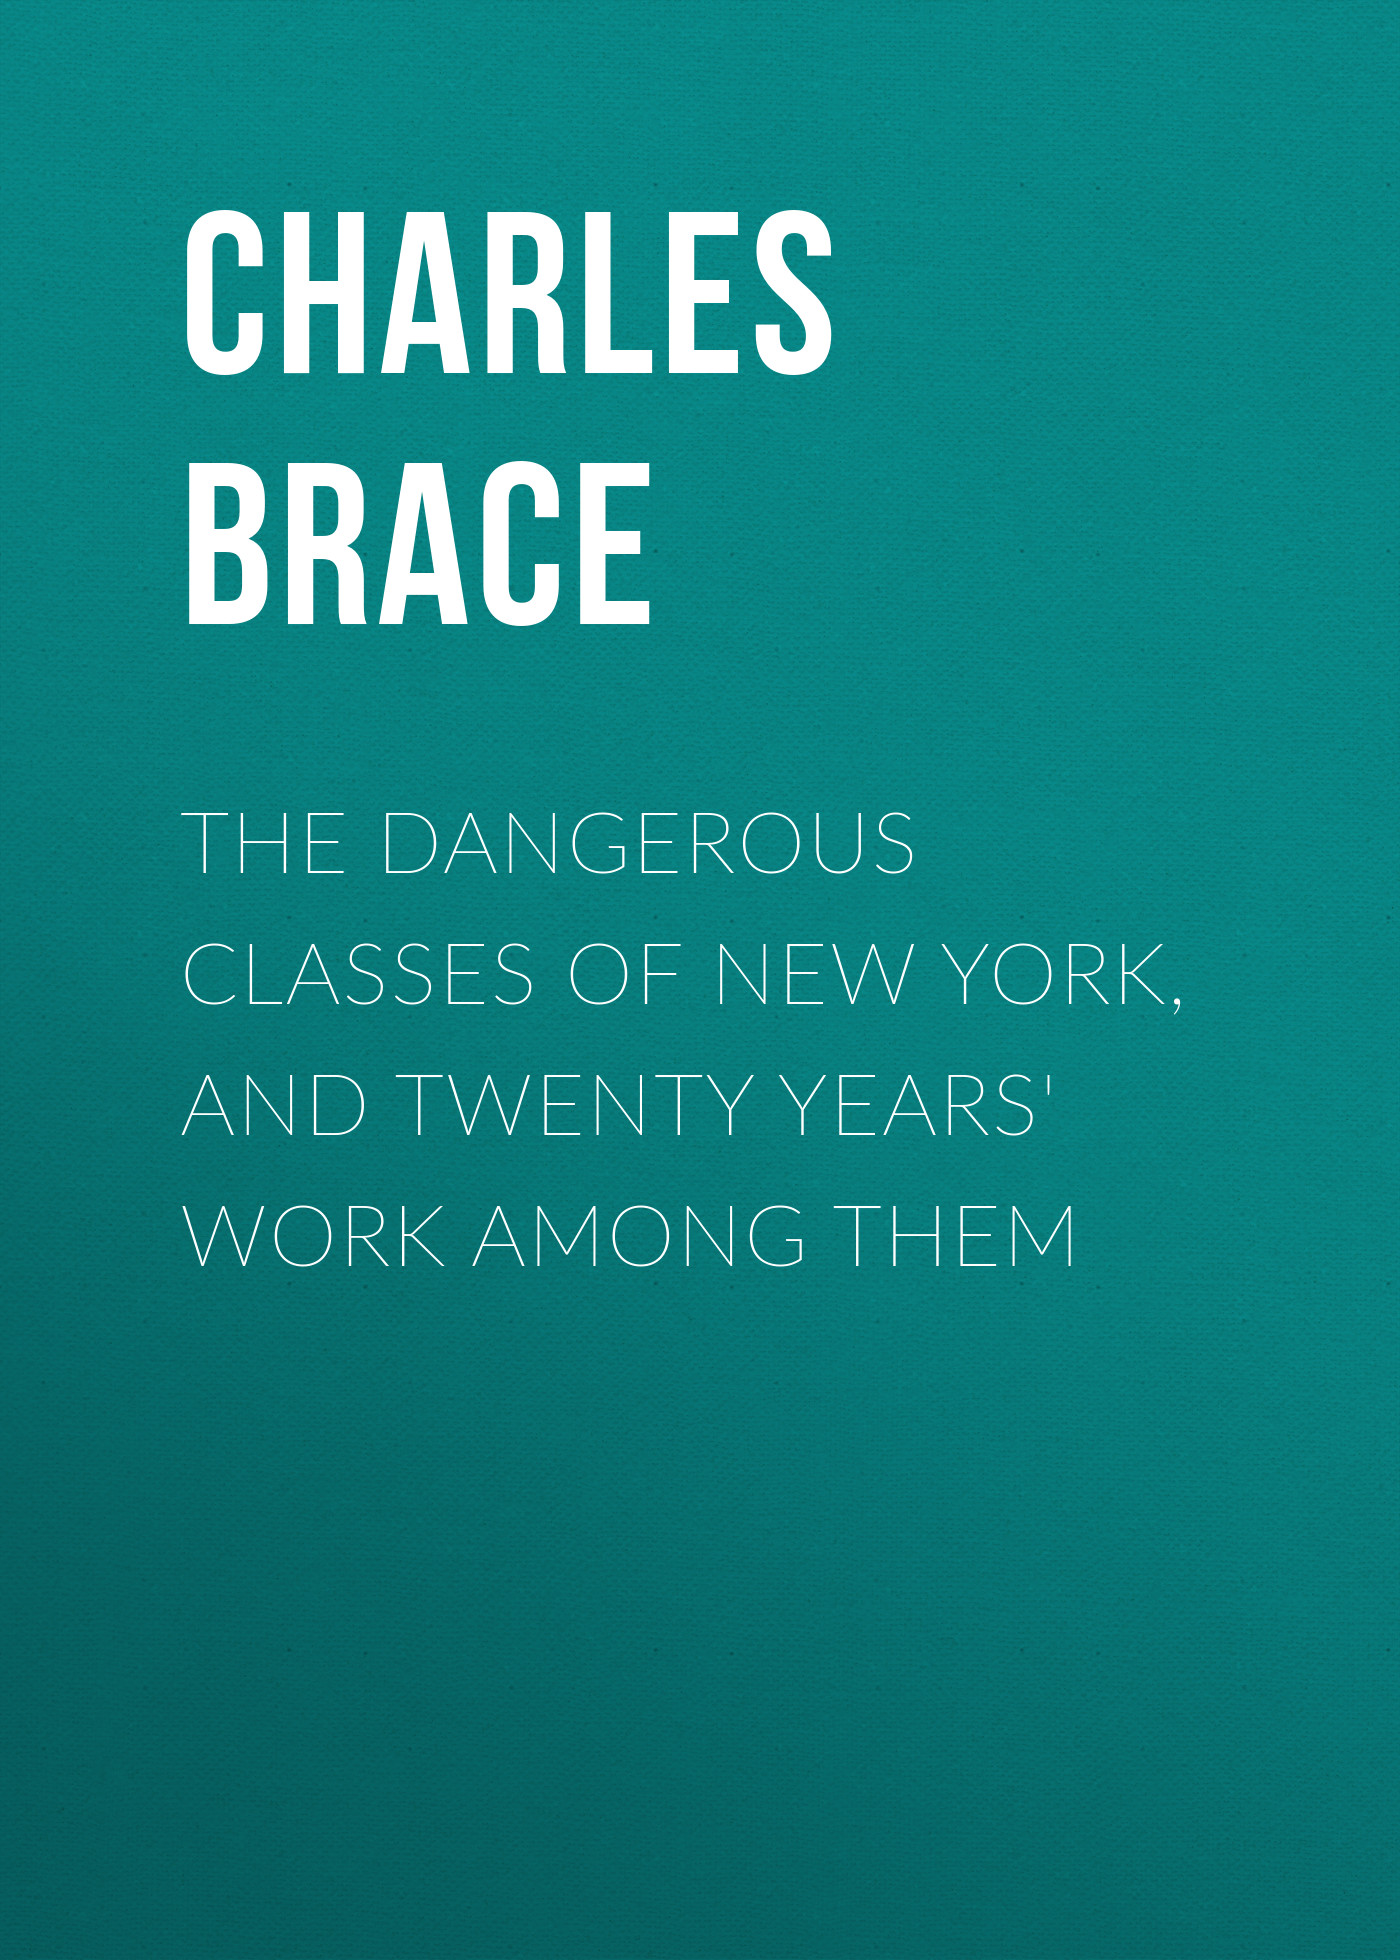 Brace Charles Loring The Dangerous Classes of New York, and Twenty Years' Work Among Them charles dixon among the birds in northern shires